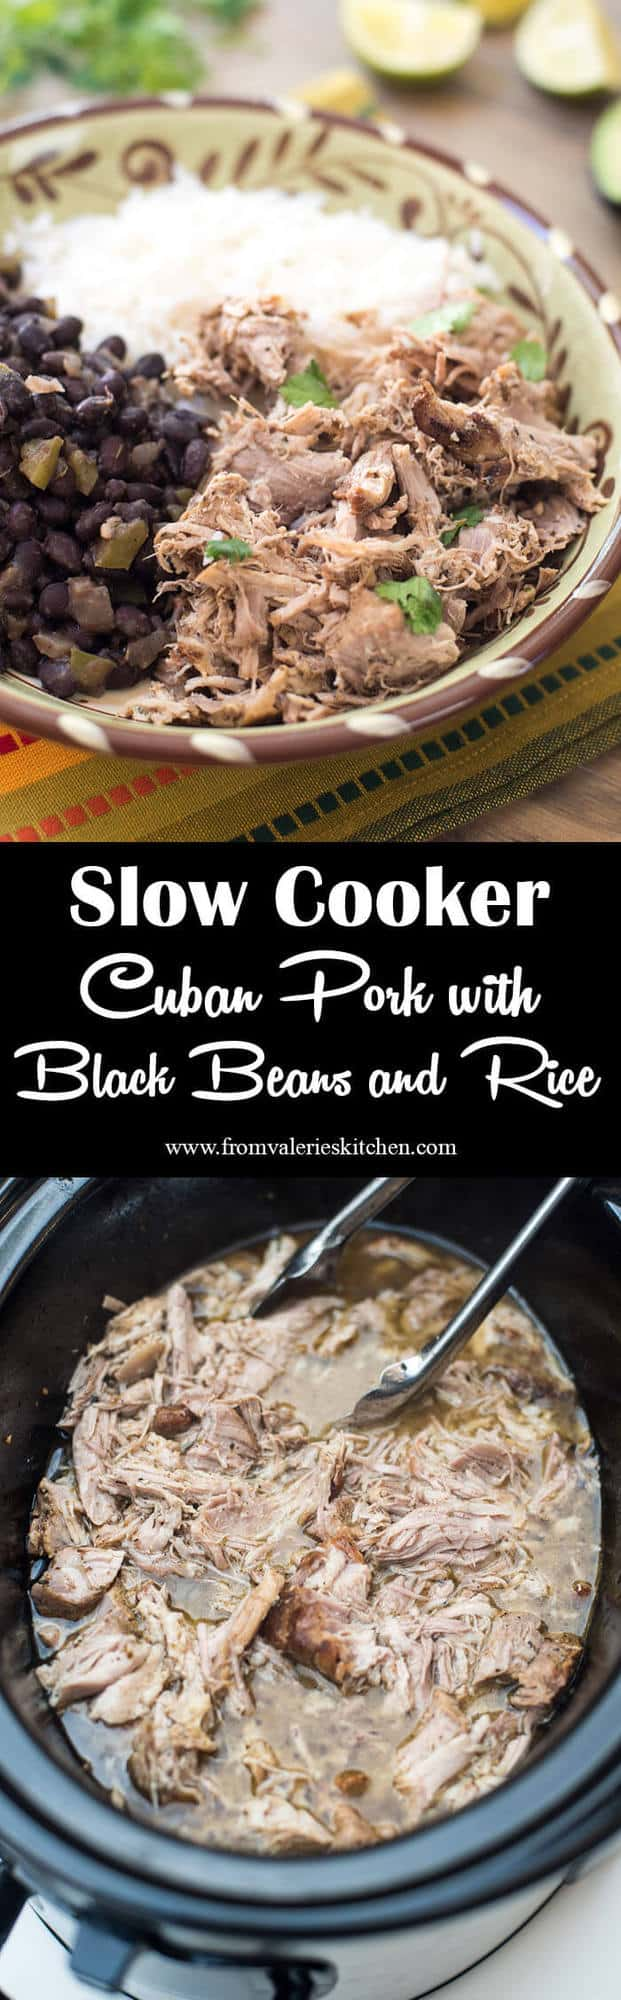 Slow Cooker Cuban Pork with Black Beans and Rice